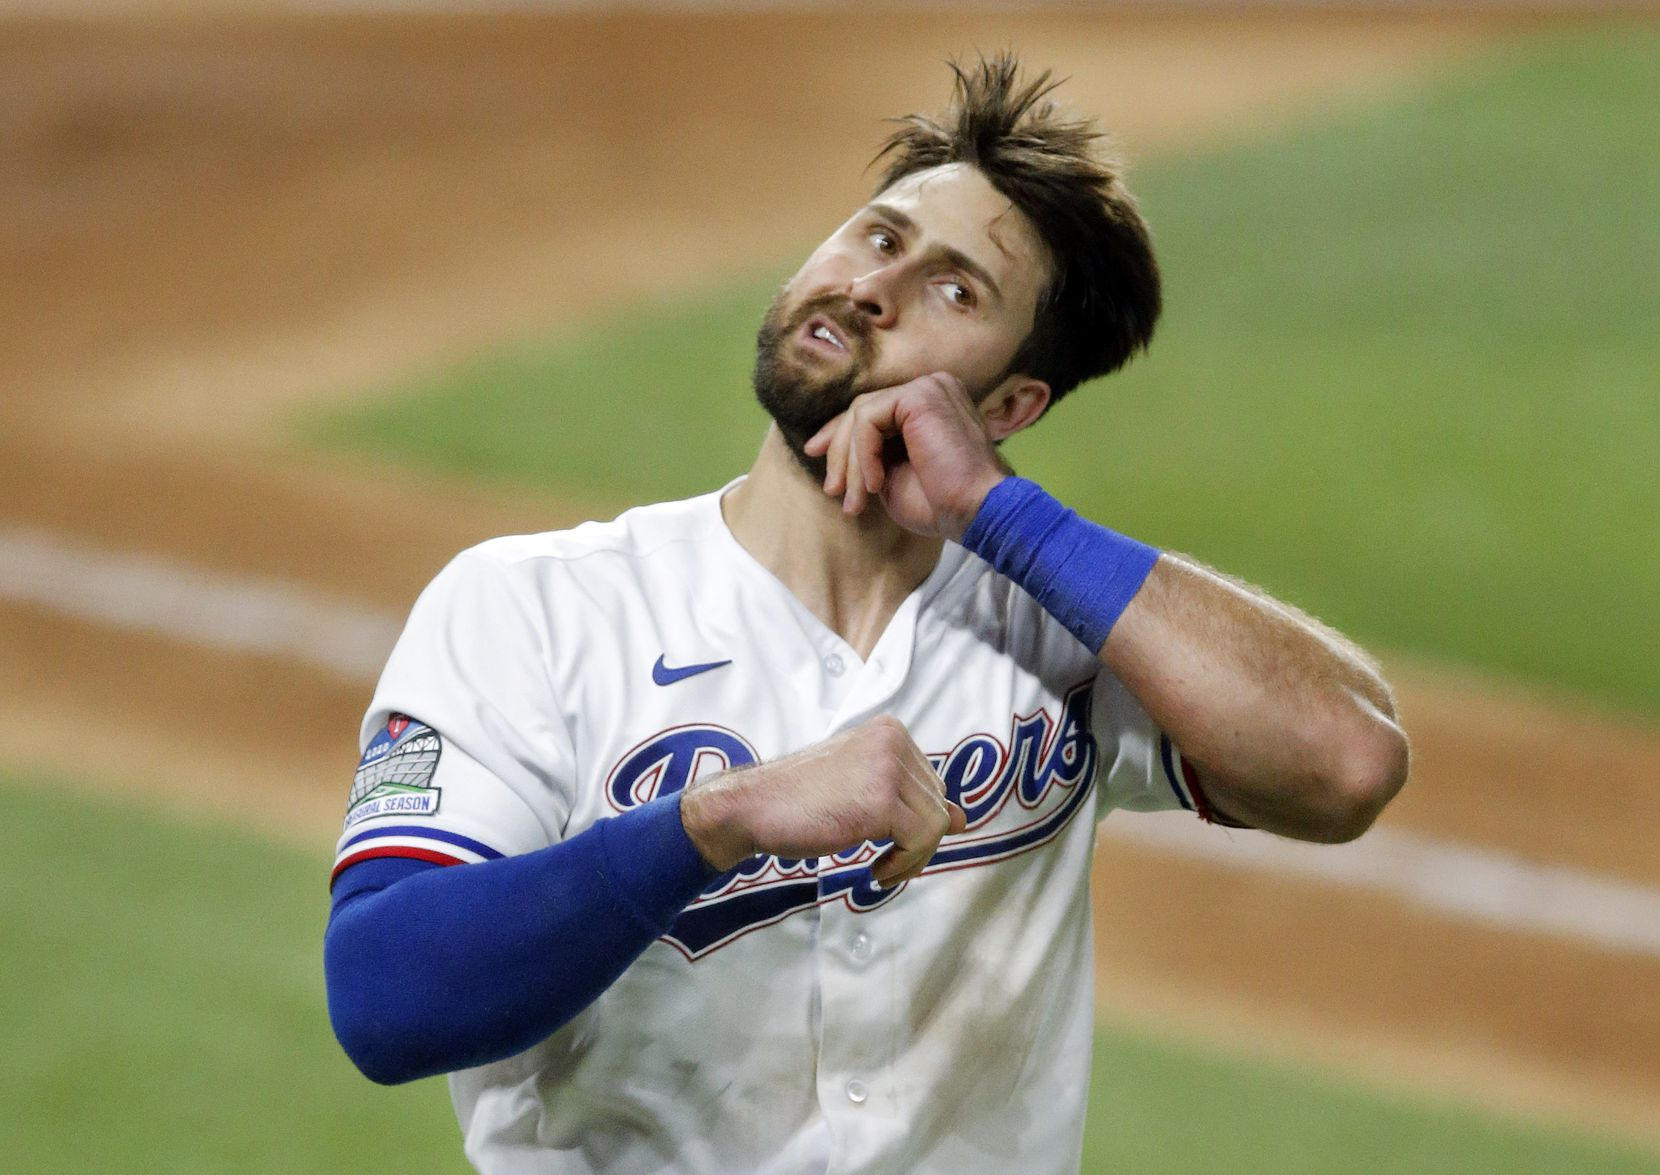 Texas Rangers batter Joey Gallo (13) stretches  after striking out to end the seventh inning at Globe Life Field in Arlington, Texas, Tuesday, September 8, 2020. (Tom Fox/The Dallas Morning News)